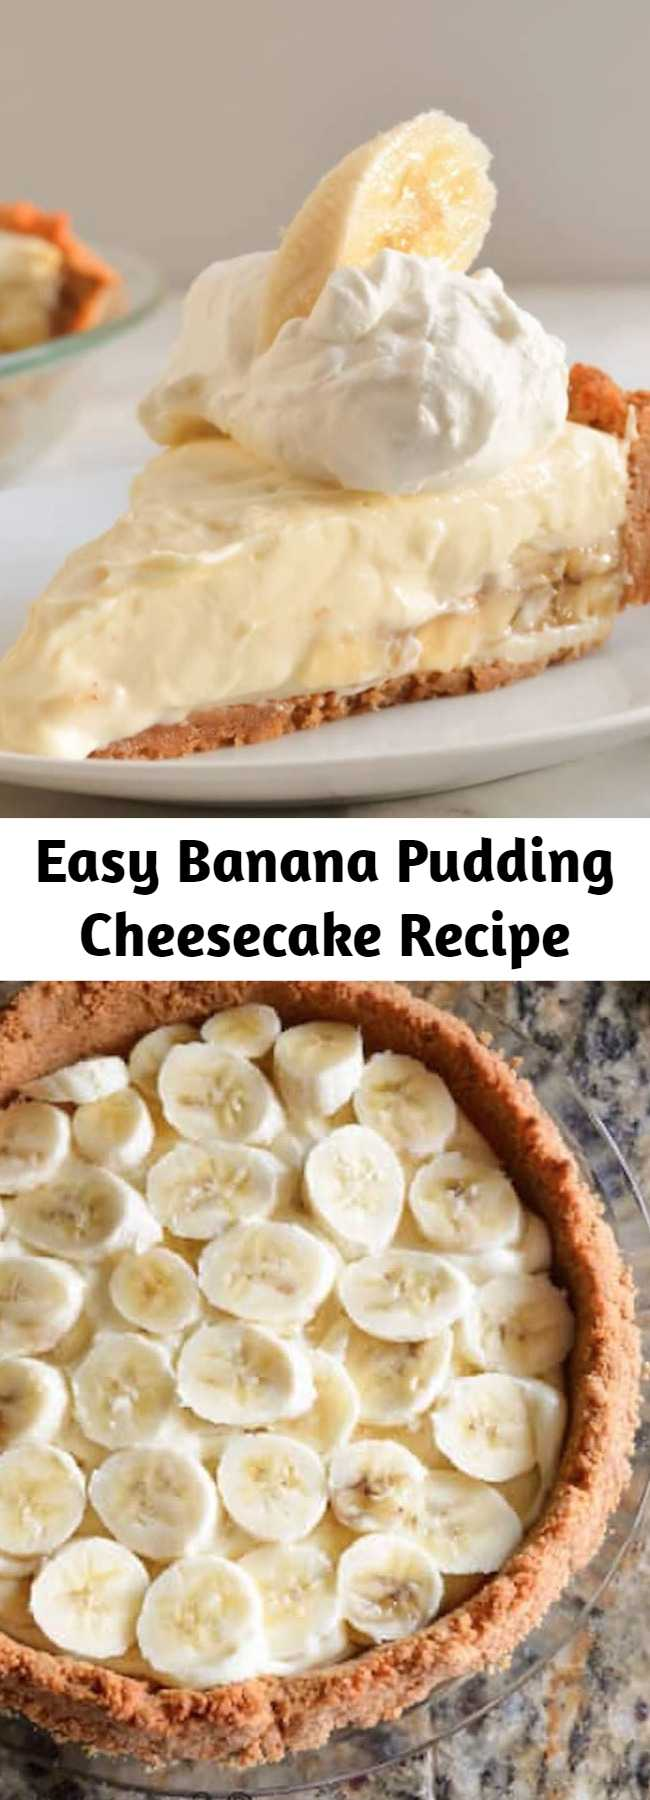 Easy Banana Pudding Cheesecake Recipe - Banana Pudding Cheese is the equivalent of Banana Cream Pie meets No Bake Cheesecake in this easy to make dessert recipe. Perfect for Thanksgiving and Christmas.